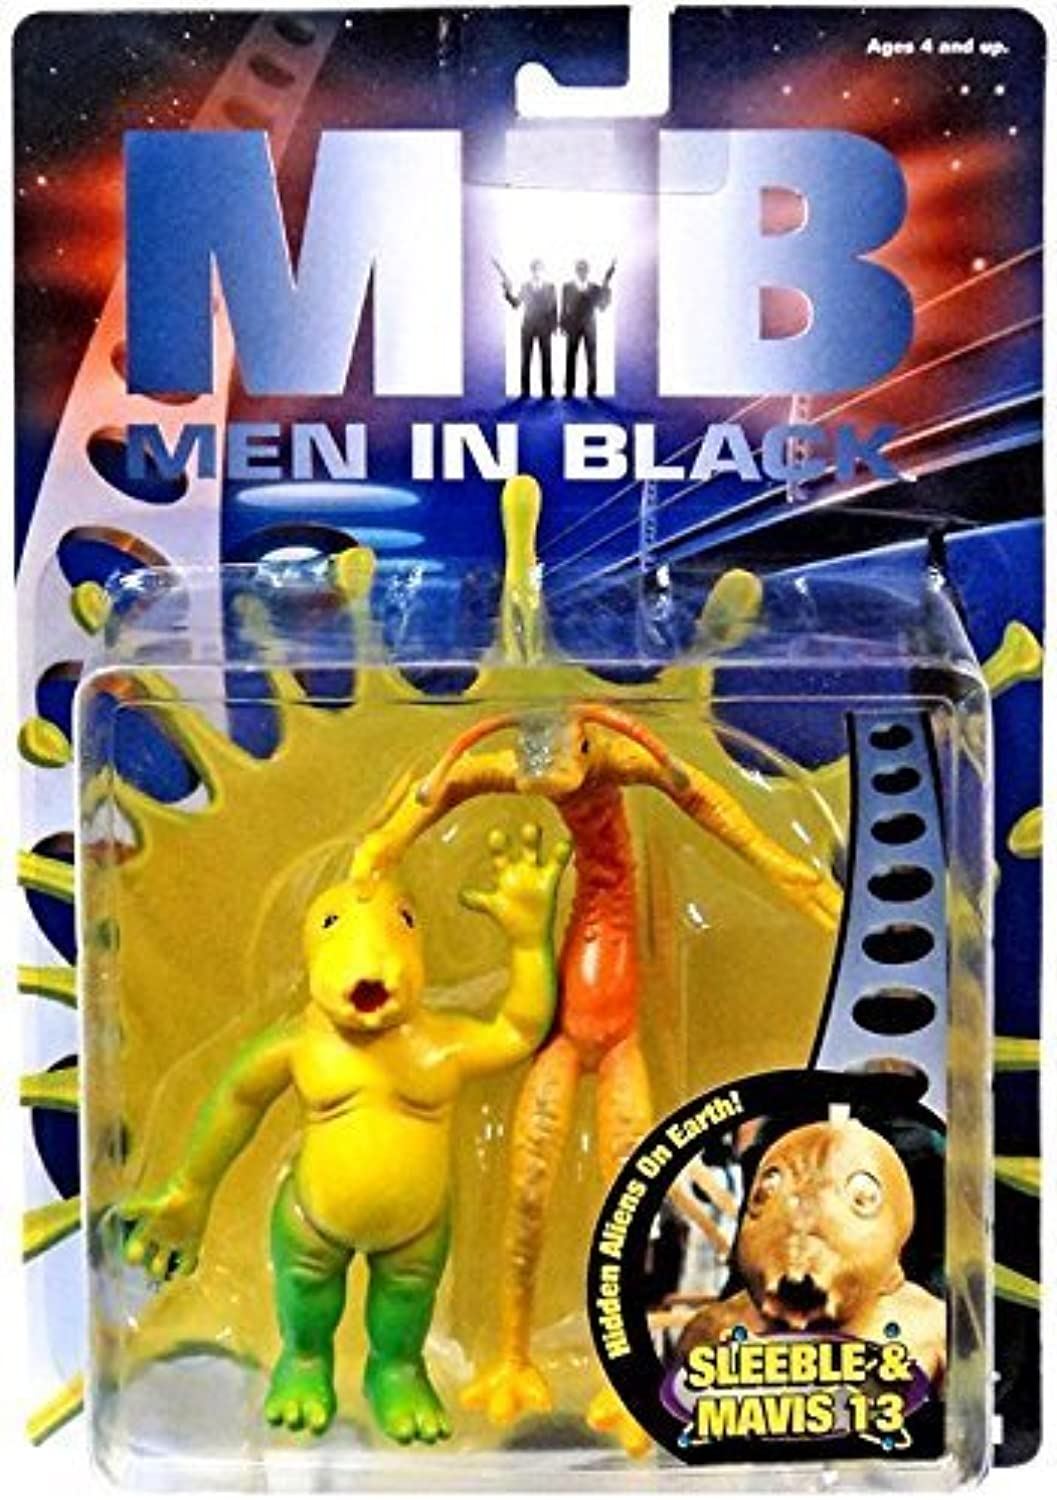 Men in Black movie Sleeble & Mavis 13 figures by Galoob